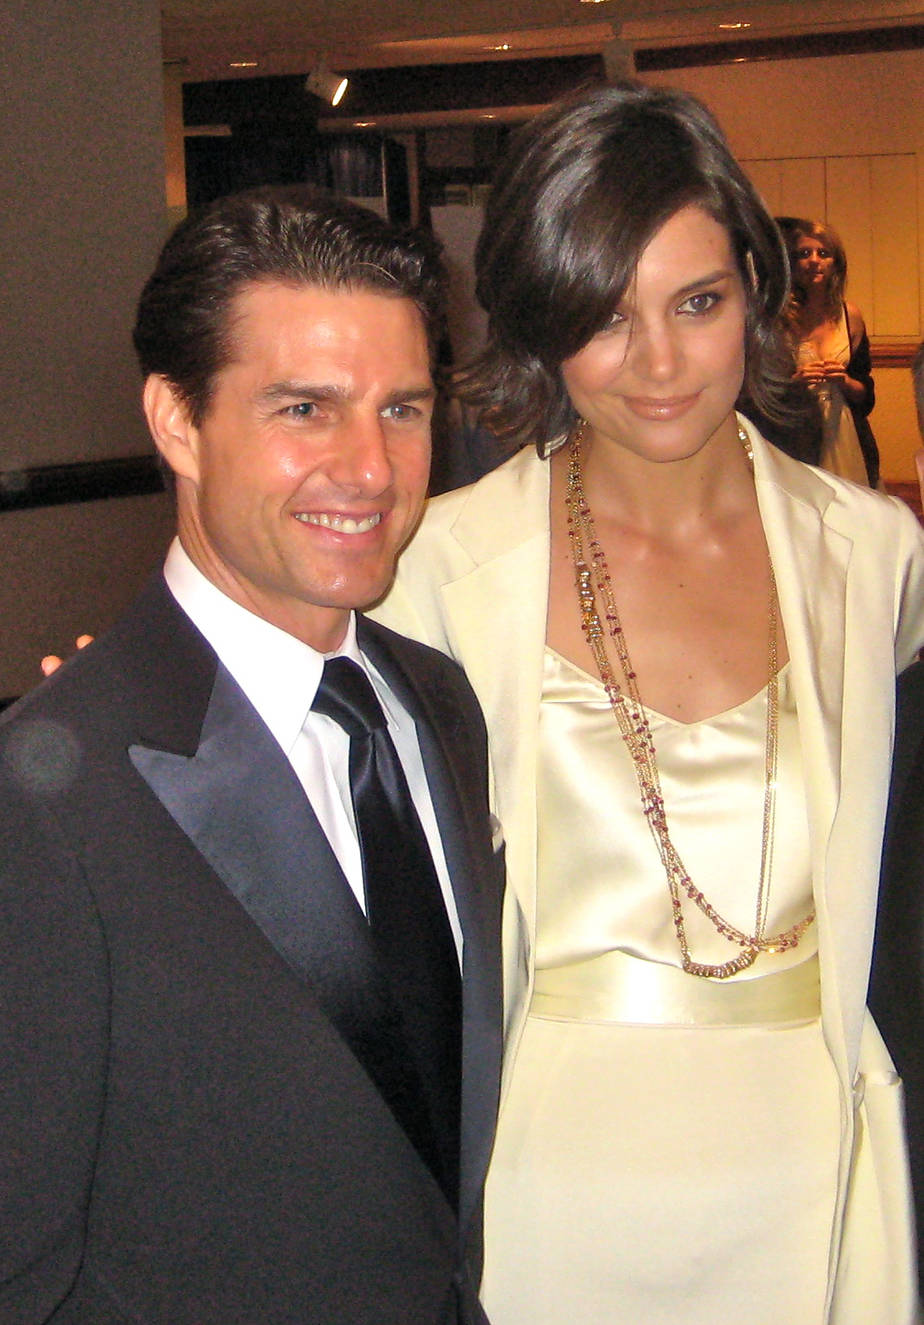 Tom Cruise, Katie Holmes 'Marriage Contract': The Origins ... |Tom Cruise Katie Holmes